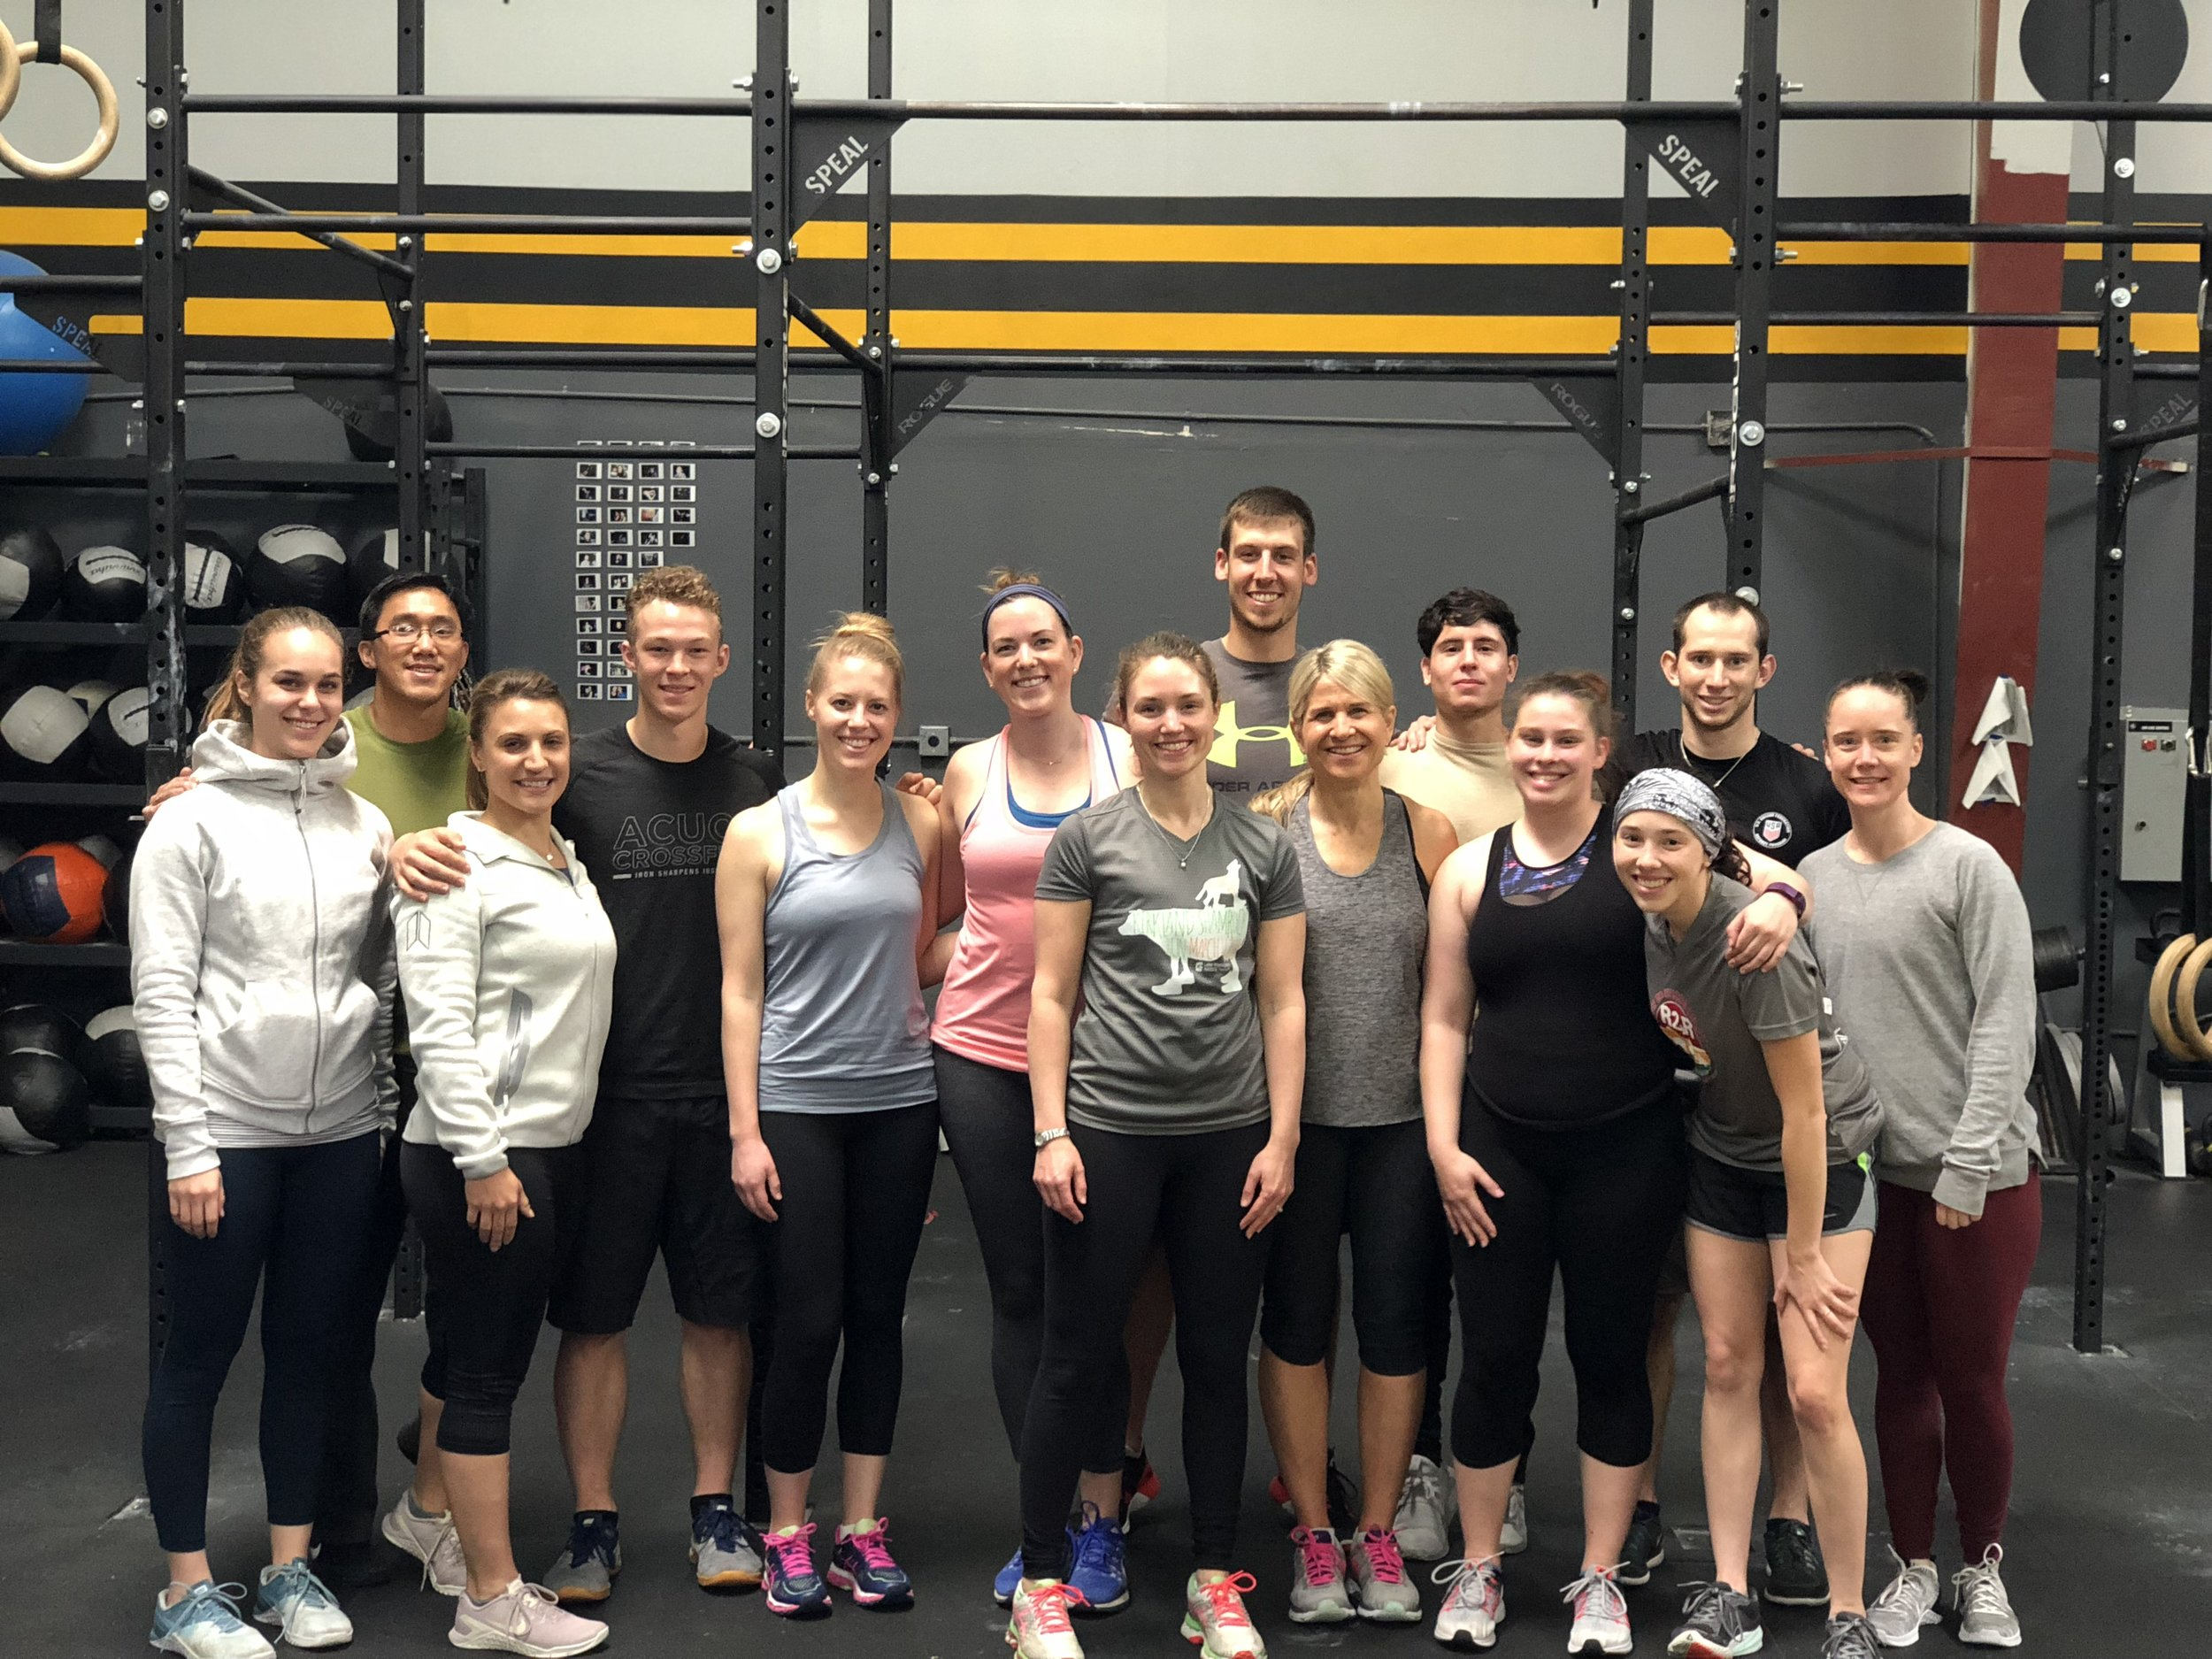 Acuo Crossfit Workout - June: The Houghton team enjoyed a tough Saturday workout at Matt's Cross-fit gym Acuo Crossfit. Thanks to the coaches that put us though a tough workout.